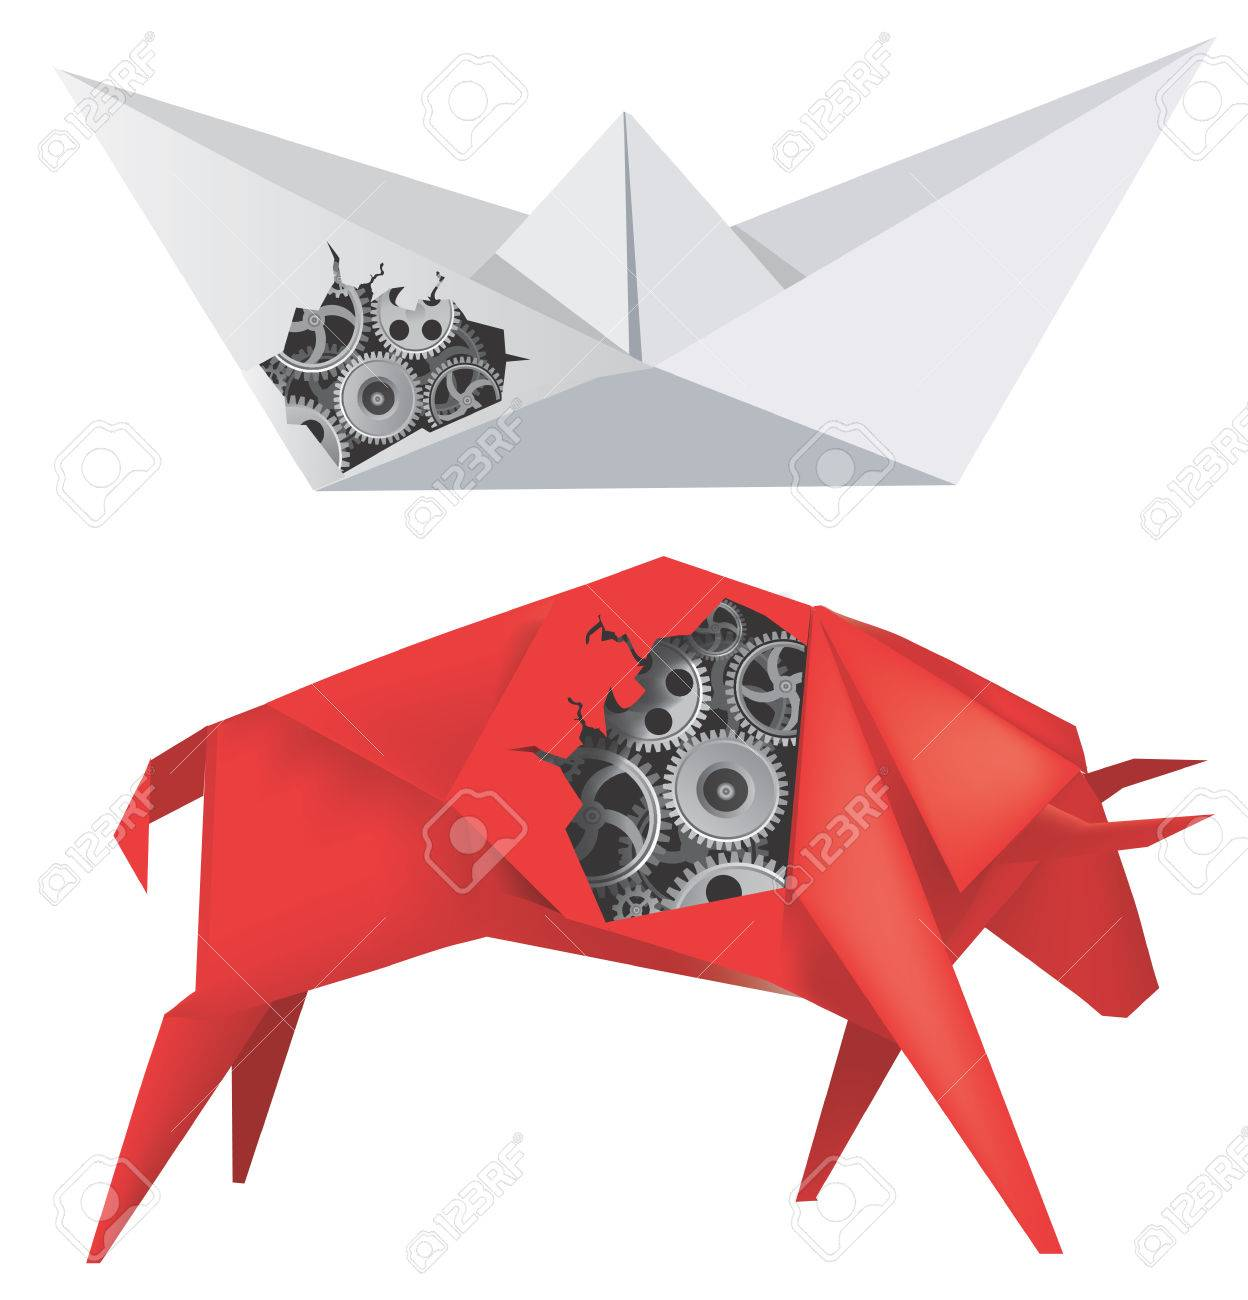 How to make an Origami Bull - Step by step instructions, Origami ... | 1300x1248